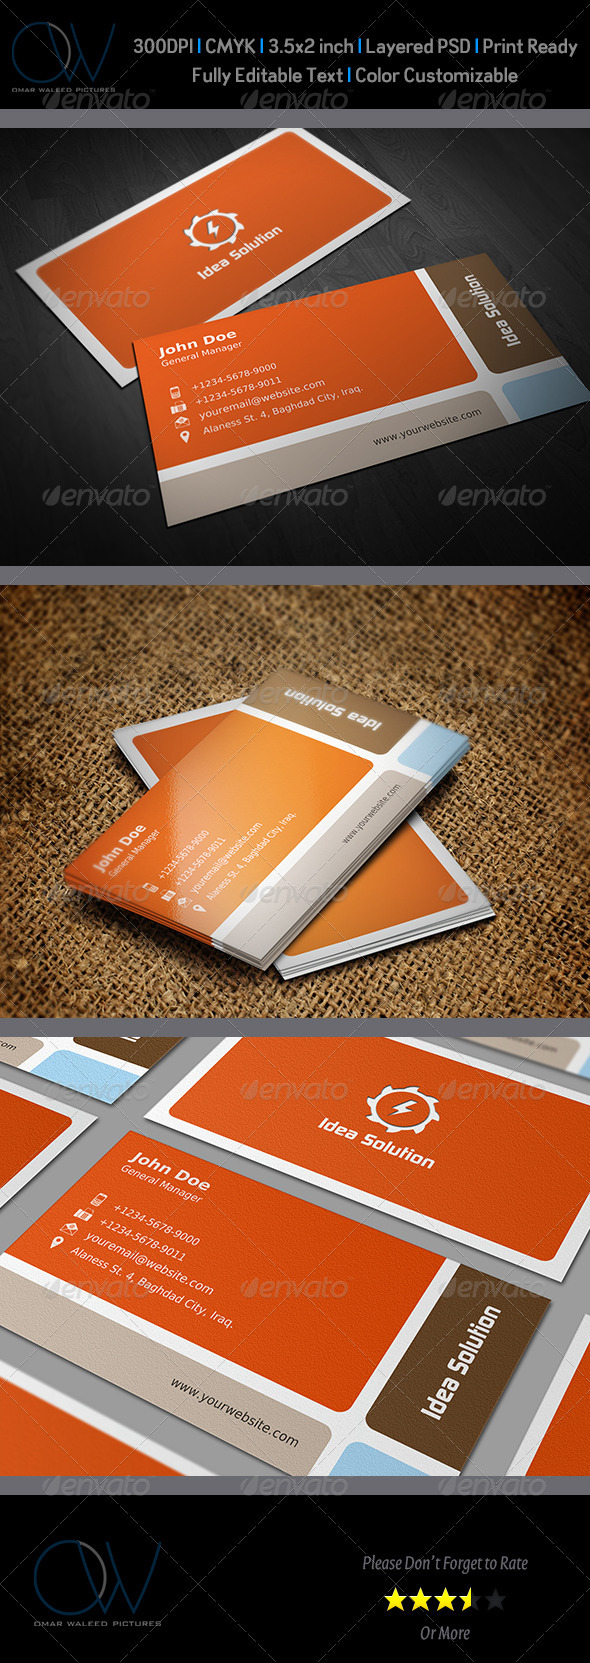 Corporate Business Card Vol.7 - Corporate Business Cards